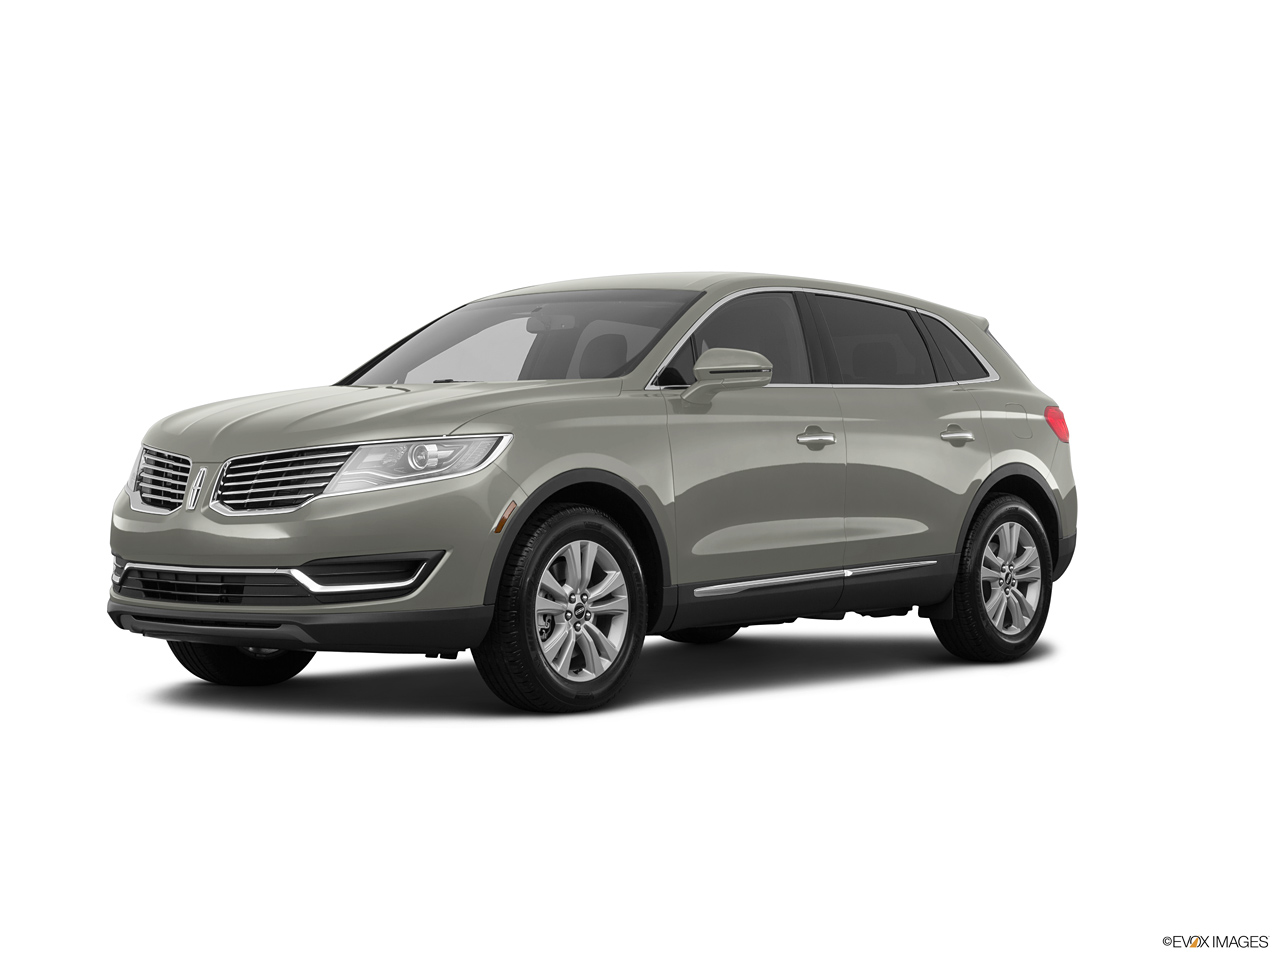 car features list for lincoln mkx 2017 2 7l select awd uae yallamotor. Black Bedroom Furniture Sets. Home Design Ideas